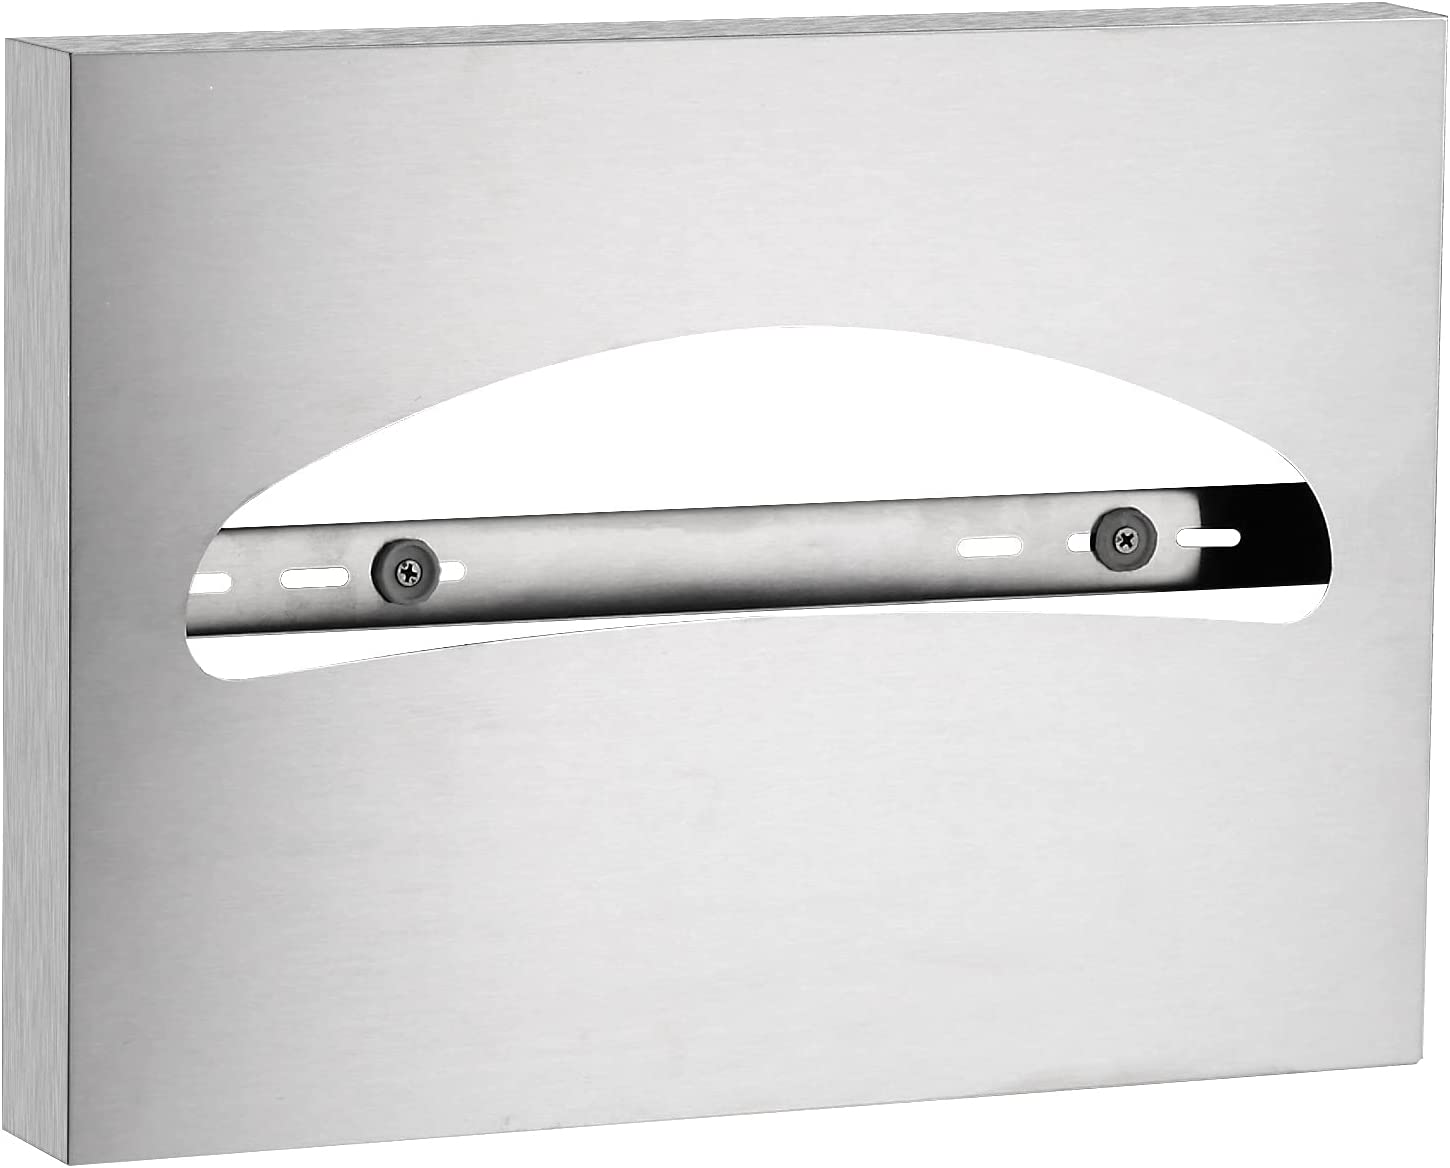 Gorlary Toilet Seat Cover Dispenser Wall Mounted SUS 304 Stainless Steel Brushed: Home & Kitchen